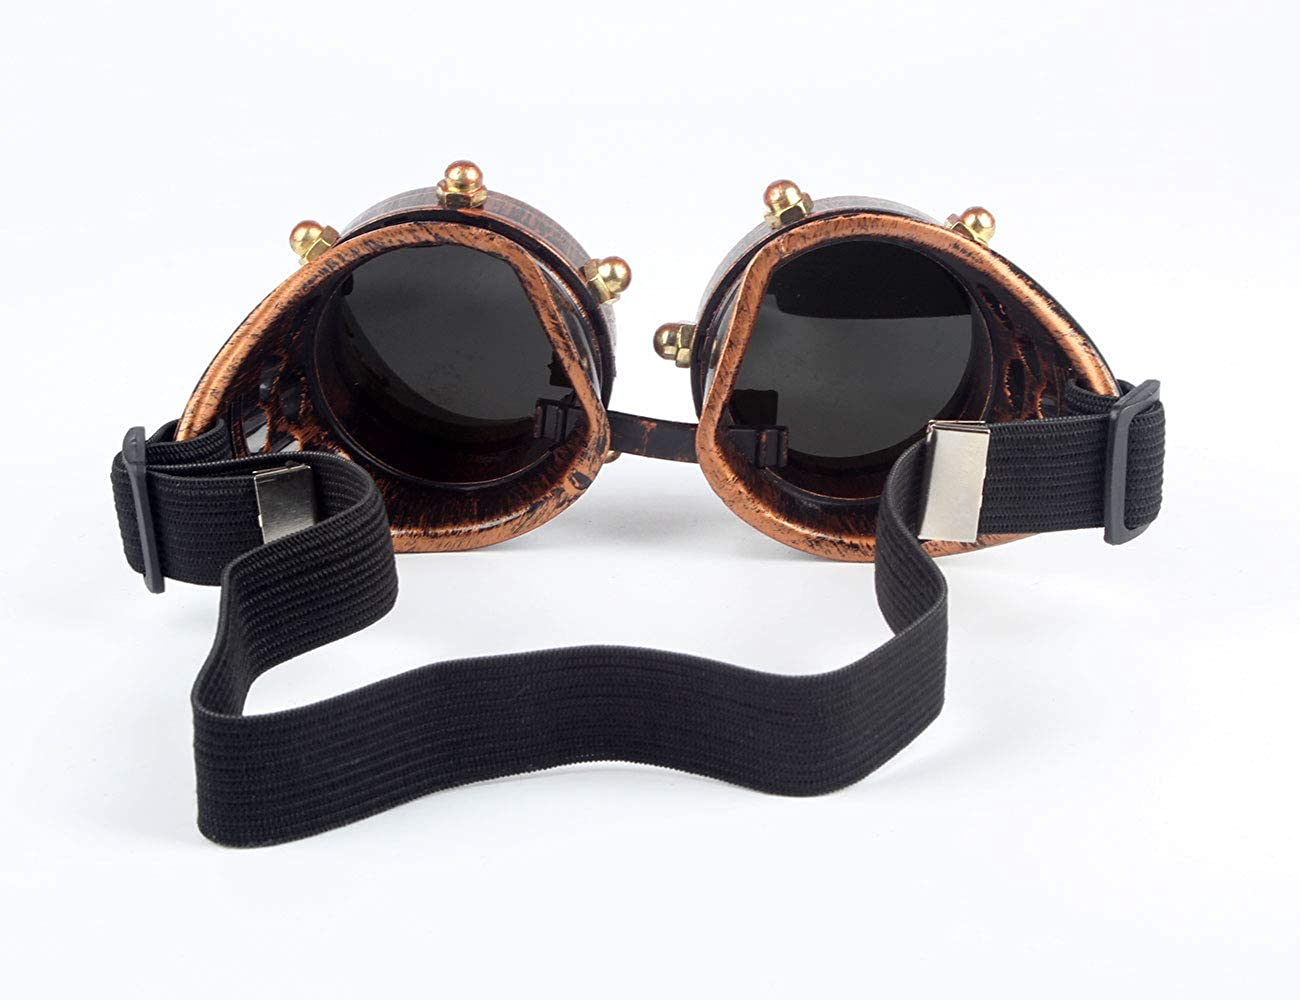 OMG/_Shop Steampunk Glasses Halloween Goth Cosplay Vintage Goggles Rustic